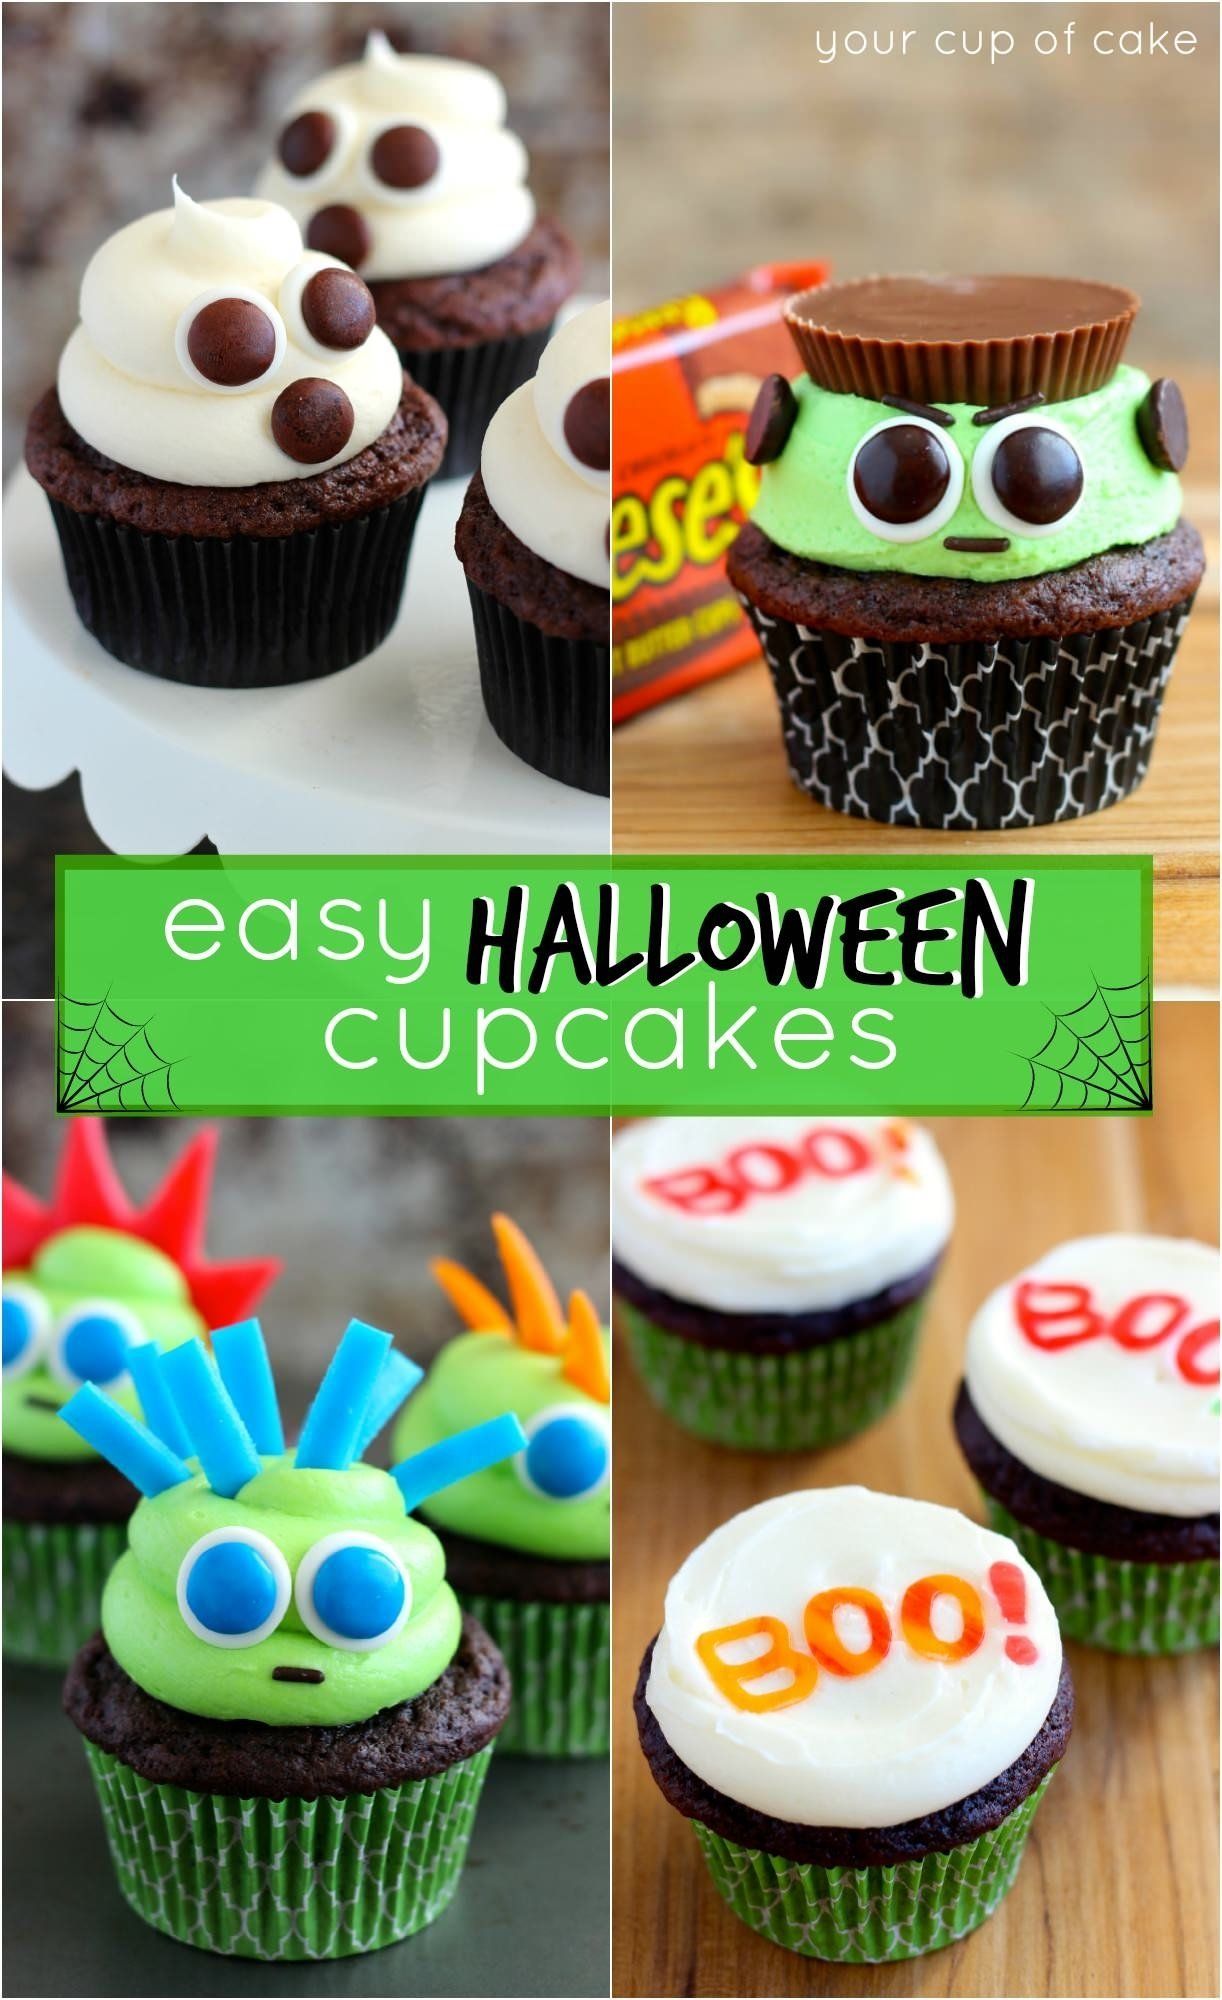 10 Elegant Halloween Cake Ideas For Kids easy halloween cupcake ideas your cup of cake 1 2020